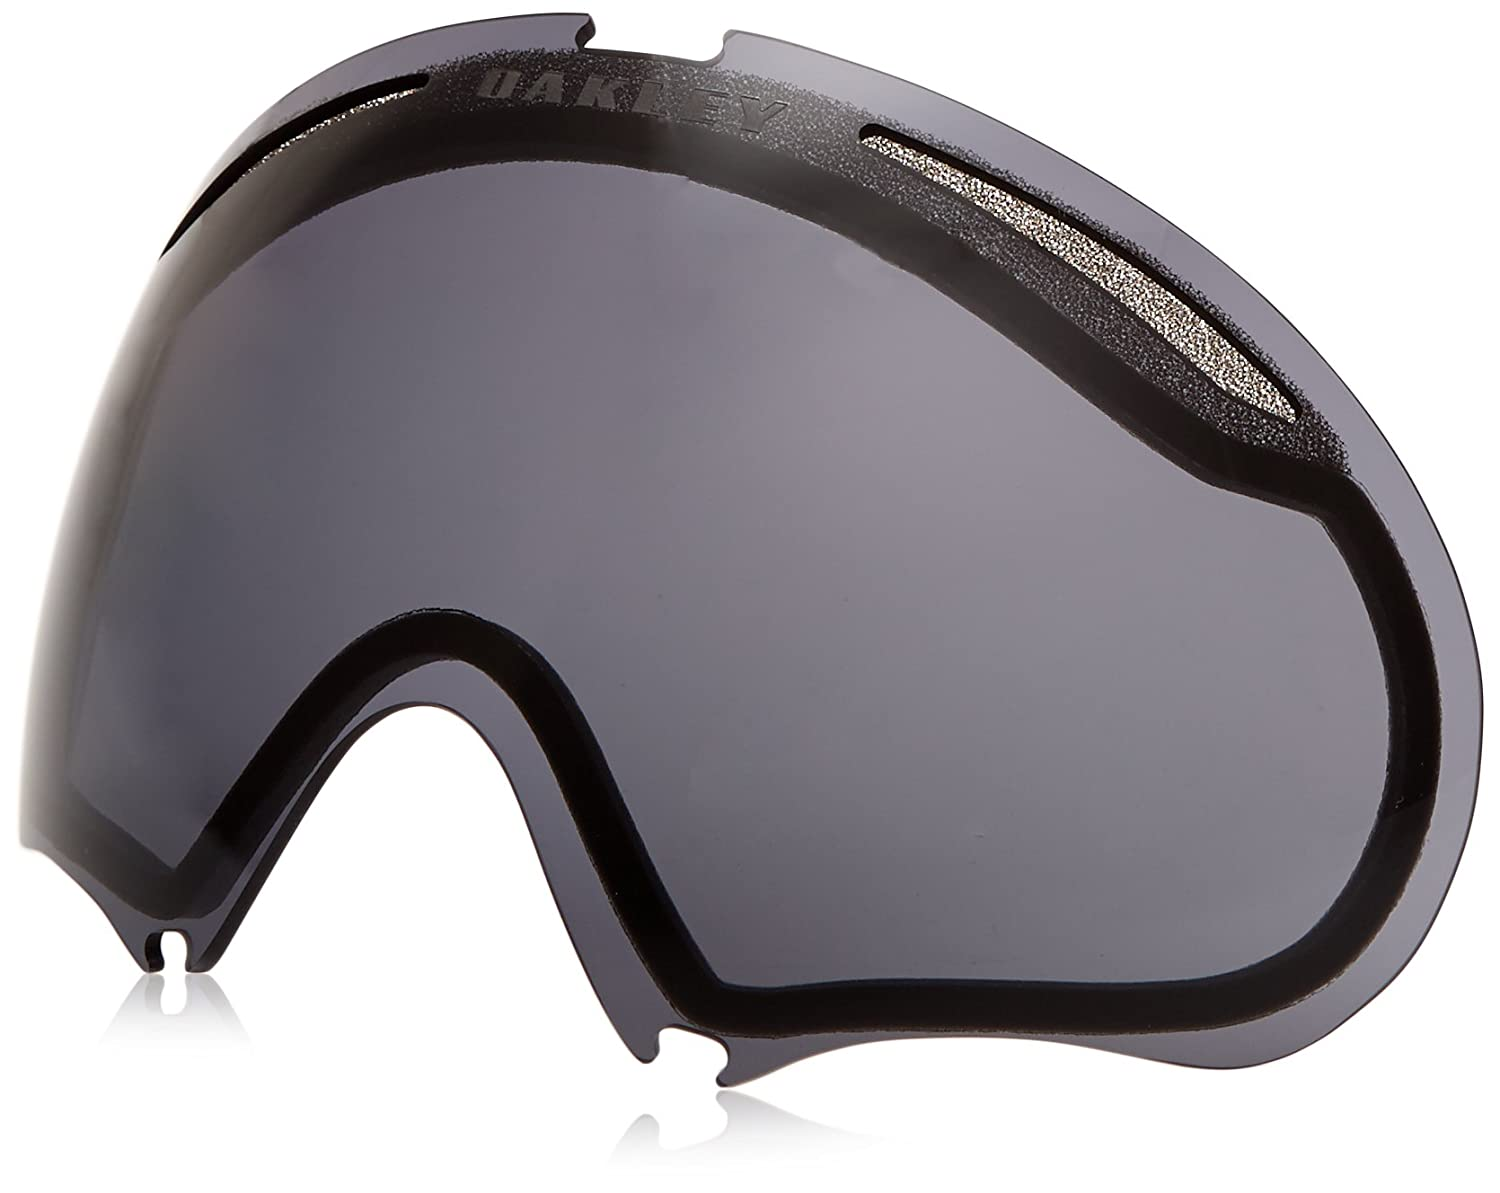 232633a18bd Amazon.com  Oakley A-Frame 2.0 Men s Replacement Lens Snow Goggles  Accessories - Black Iridium One Size  Sports   Outdoors